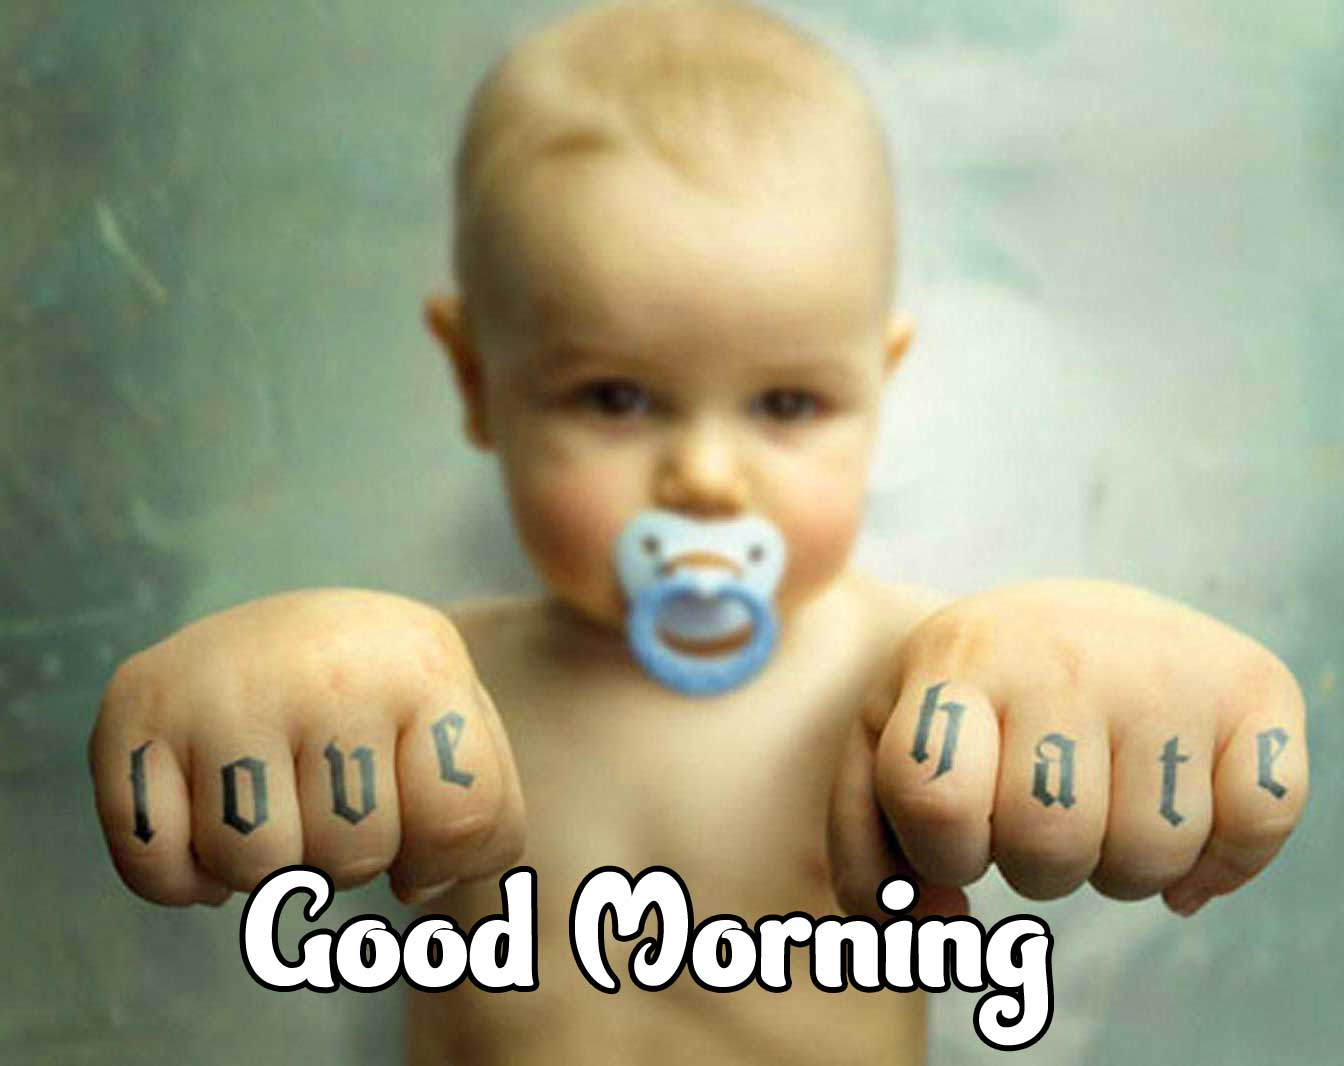 Cute Baby Boys & Girls Good Morning Images Pics Download